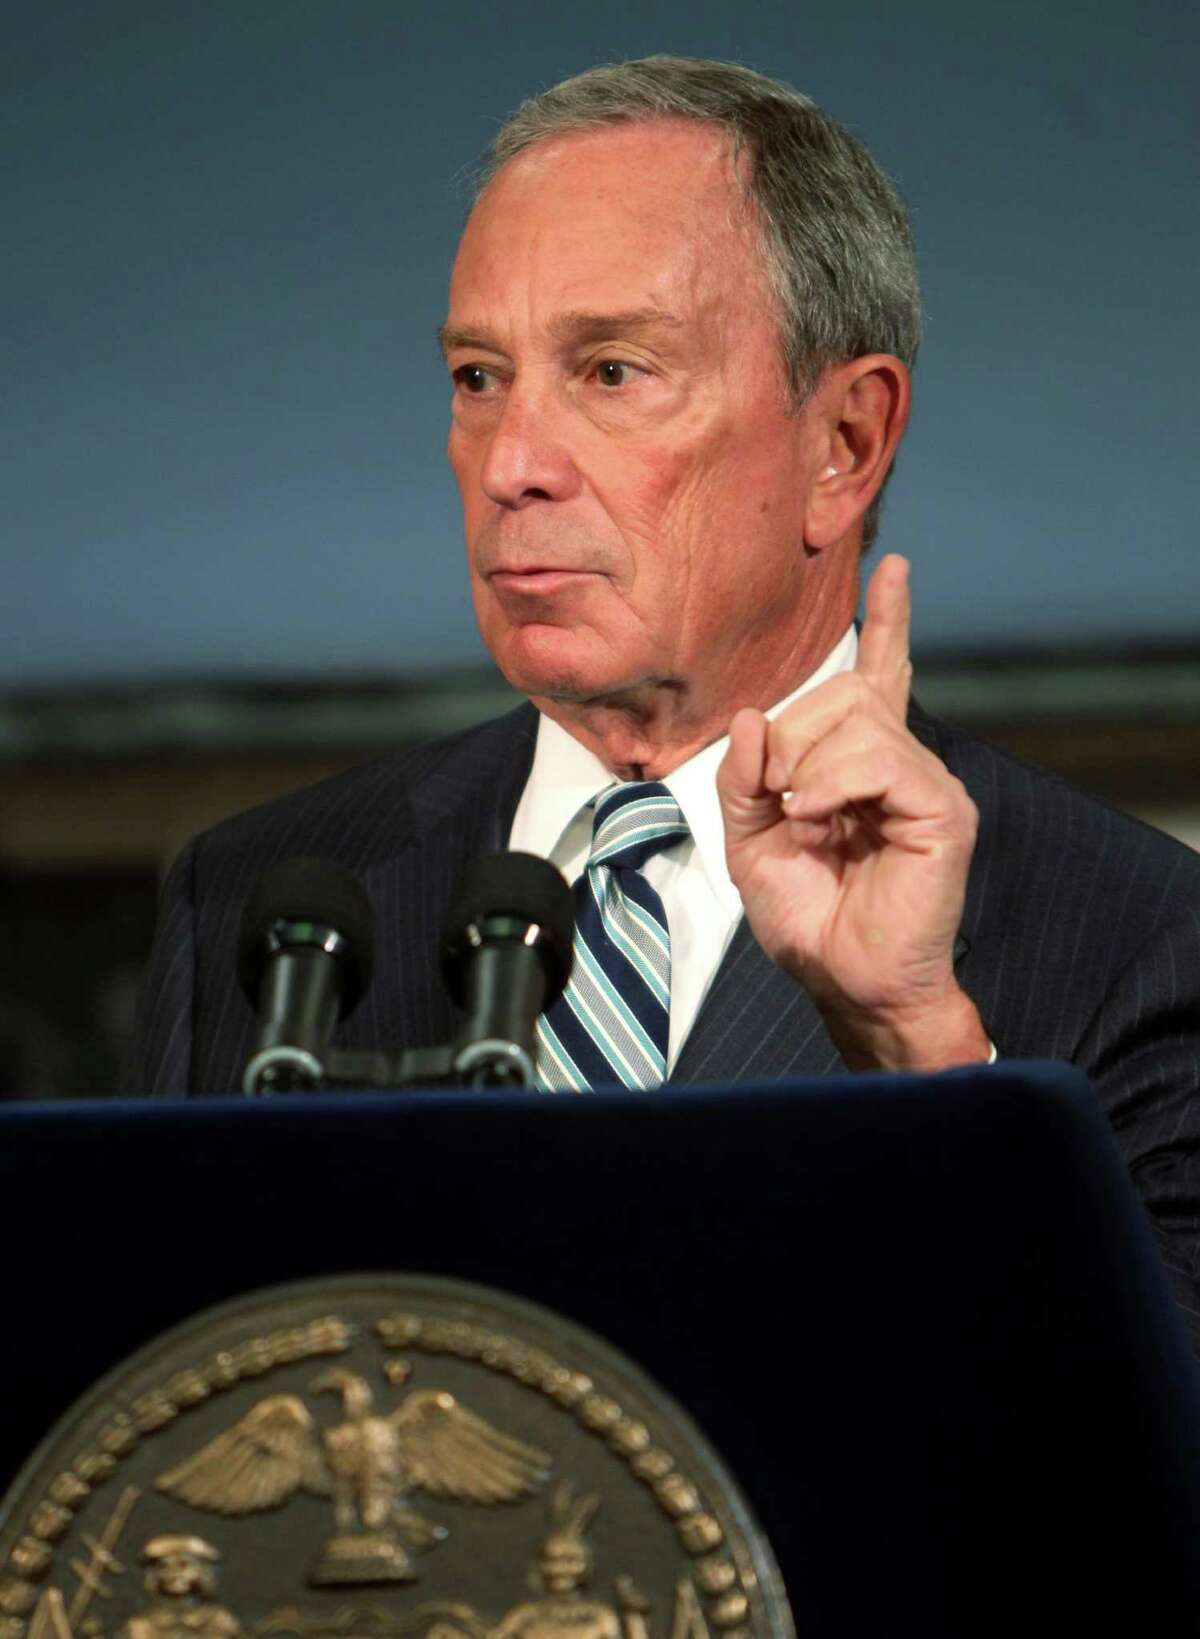 New York City Mayor Michael Bloomberg speaks at a news conference in New York, Thursday, Sept. 13, 2012. New York City cracked down on supersized sodas and other sugary drinks Thursday in what is celebrated as a groundbreaking attempt to curb obesity and condemned as a breathtaking intrusion into people's lives by a mayor bent on creating a ?